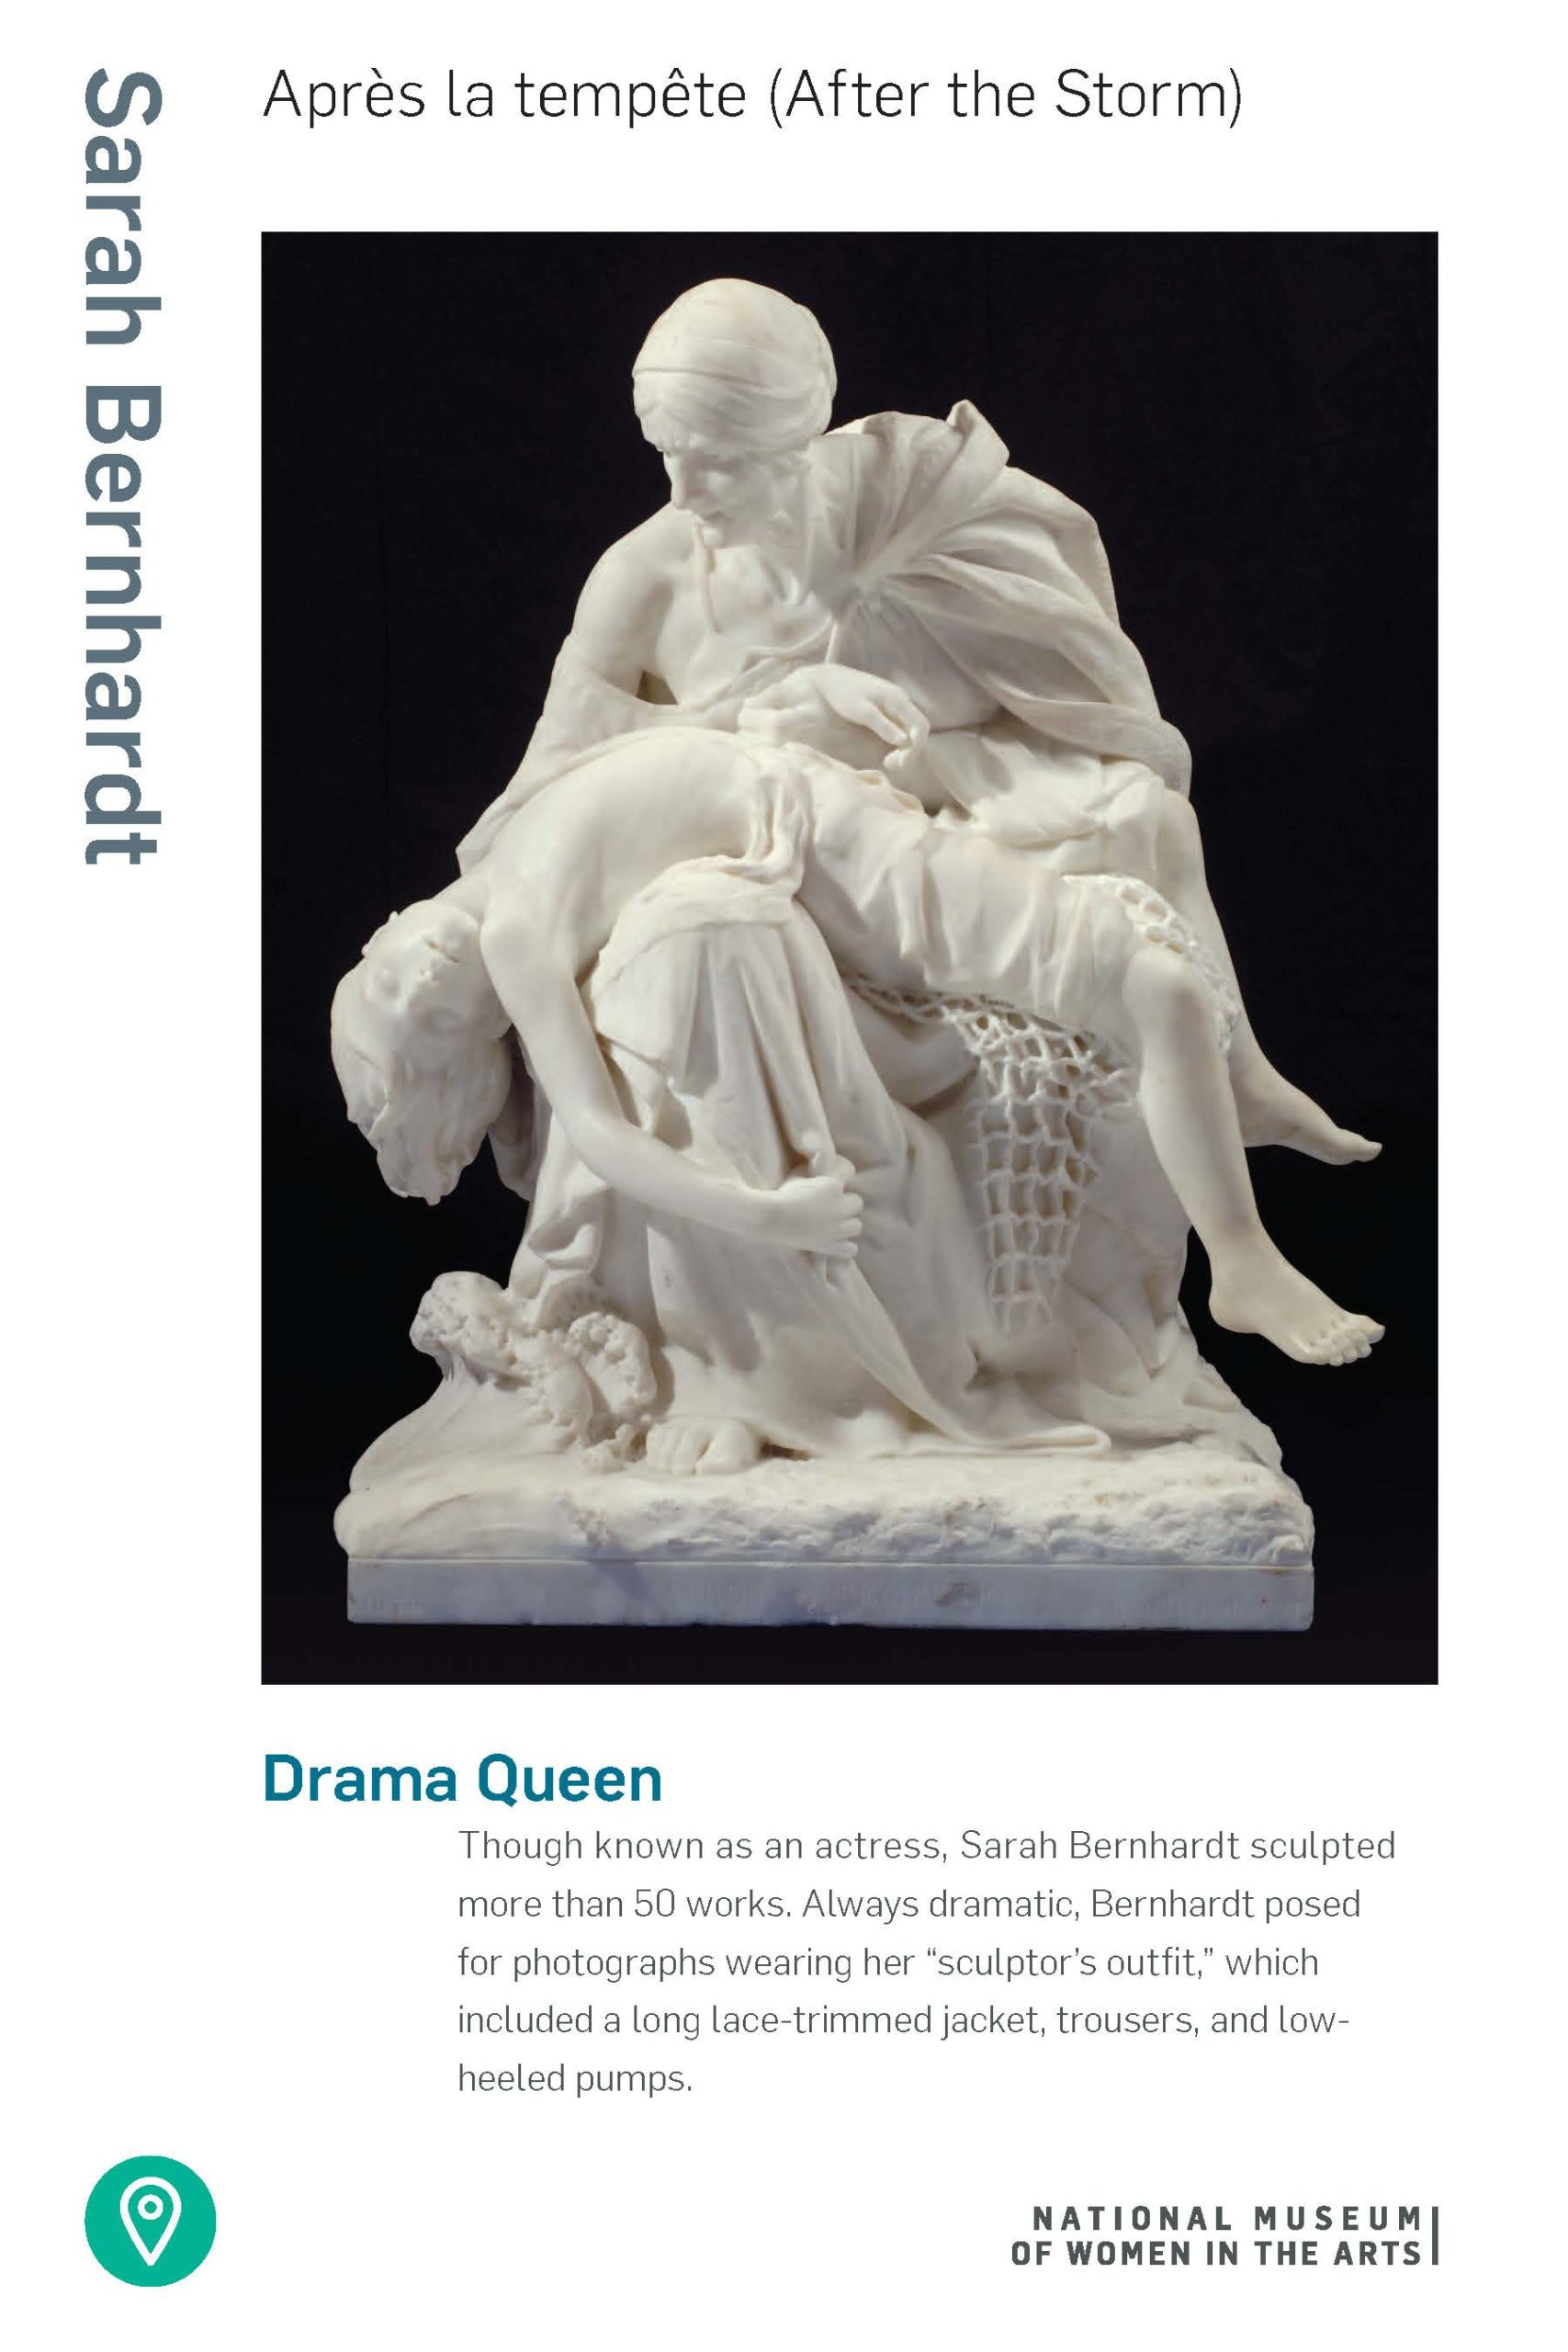 Facts about the artist Sarah Bernhardt and her sculpture 'After the Storm' (PDF)